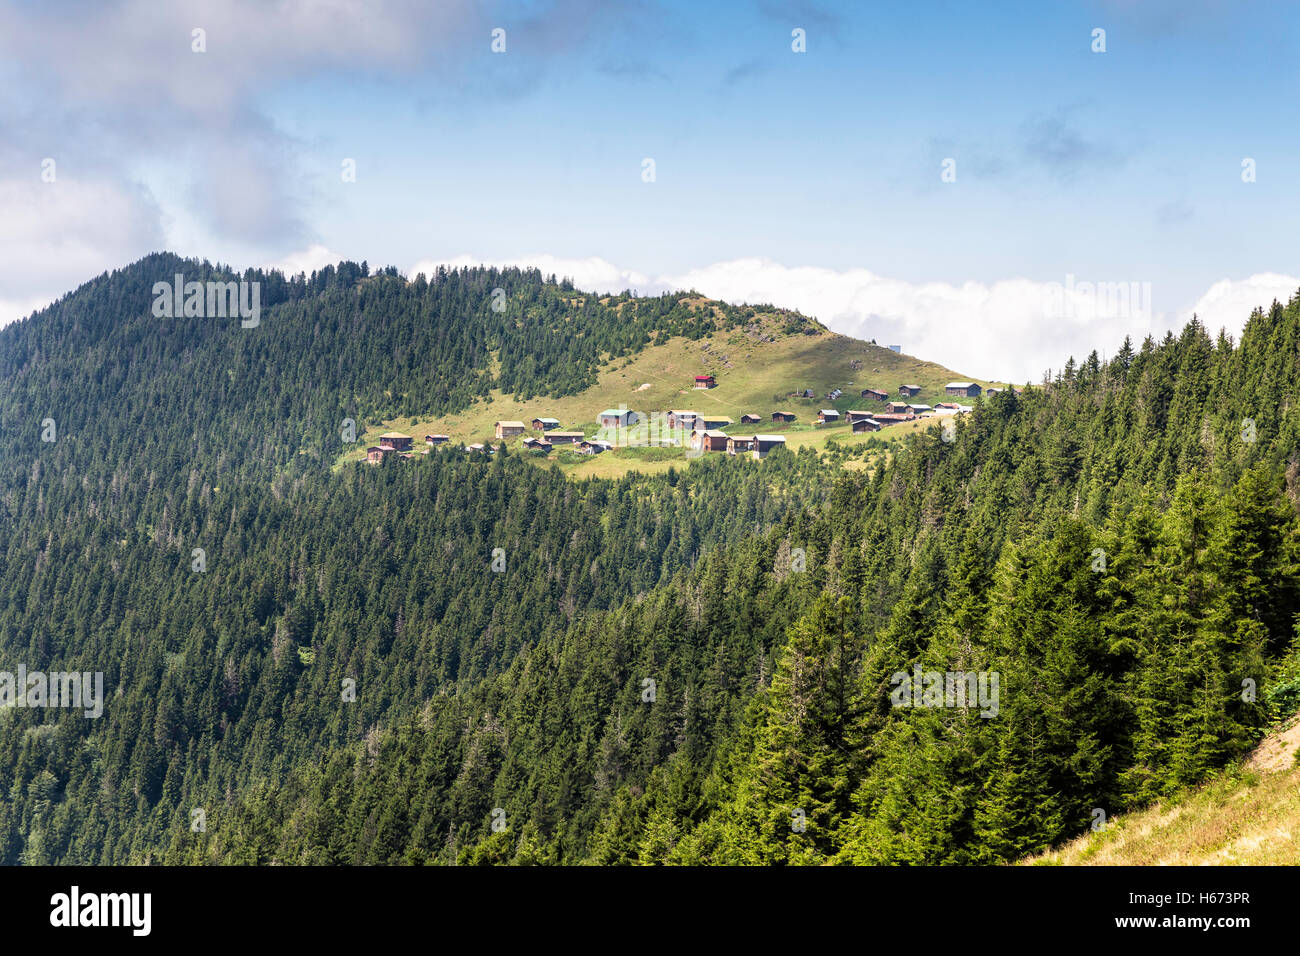 Remote view of the houses in Sal plateau near Senyuva, Camlihemsin. Camlihemsin is a small town and district of - Stock Image